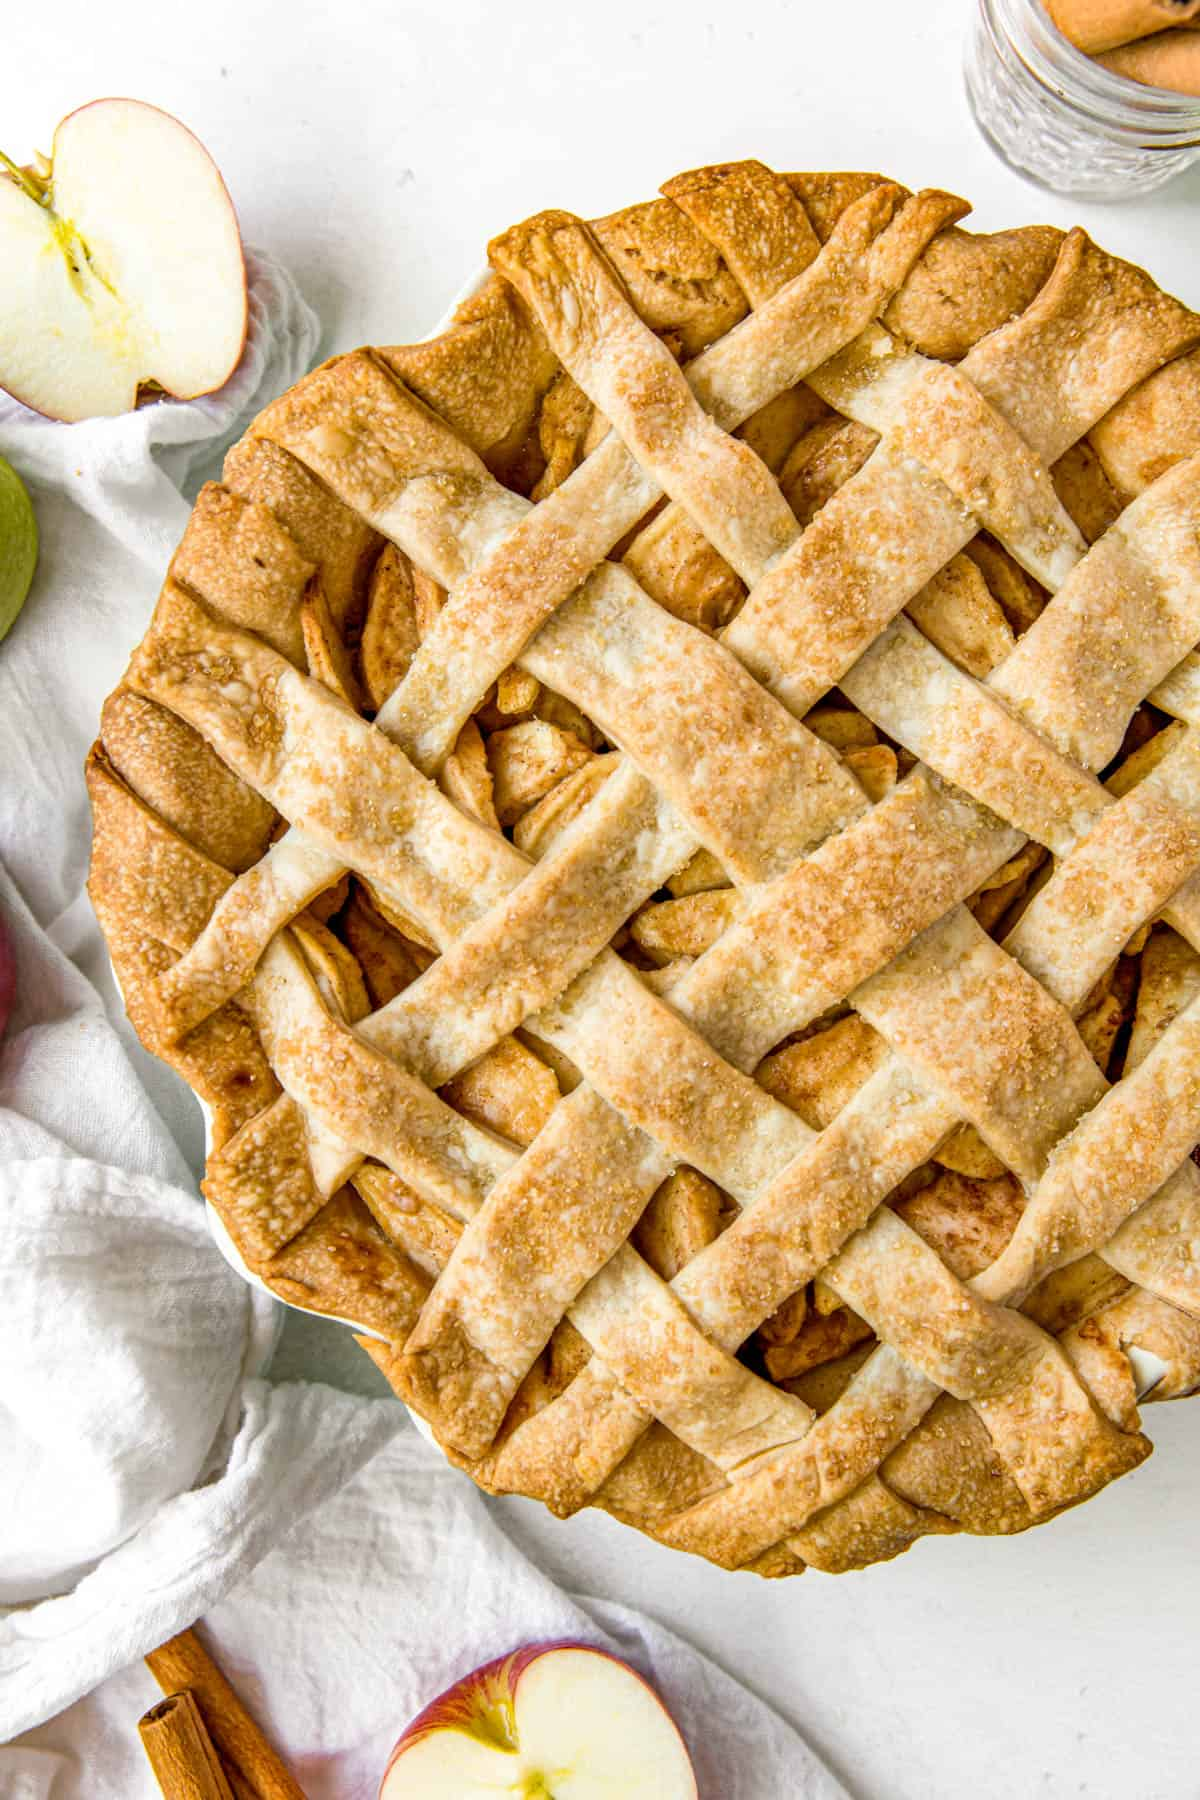 baked apple pie on a white tabletop